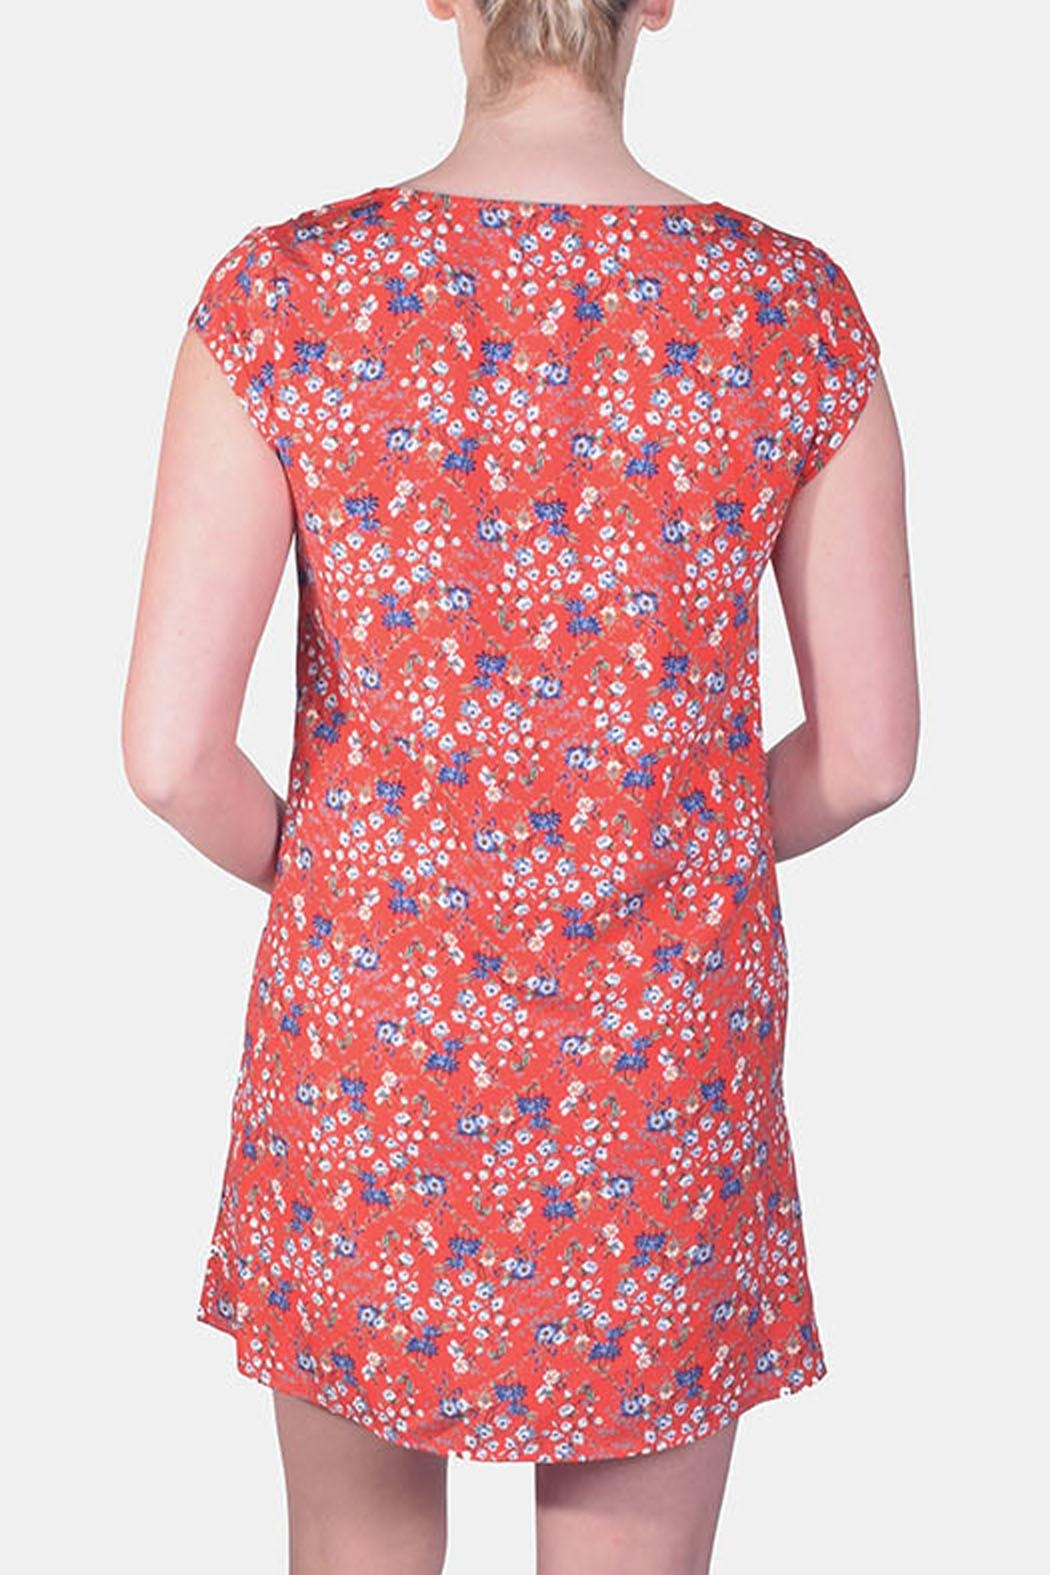 rokoko Picnic Floral Button-Down - Side Cropped Image